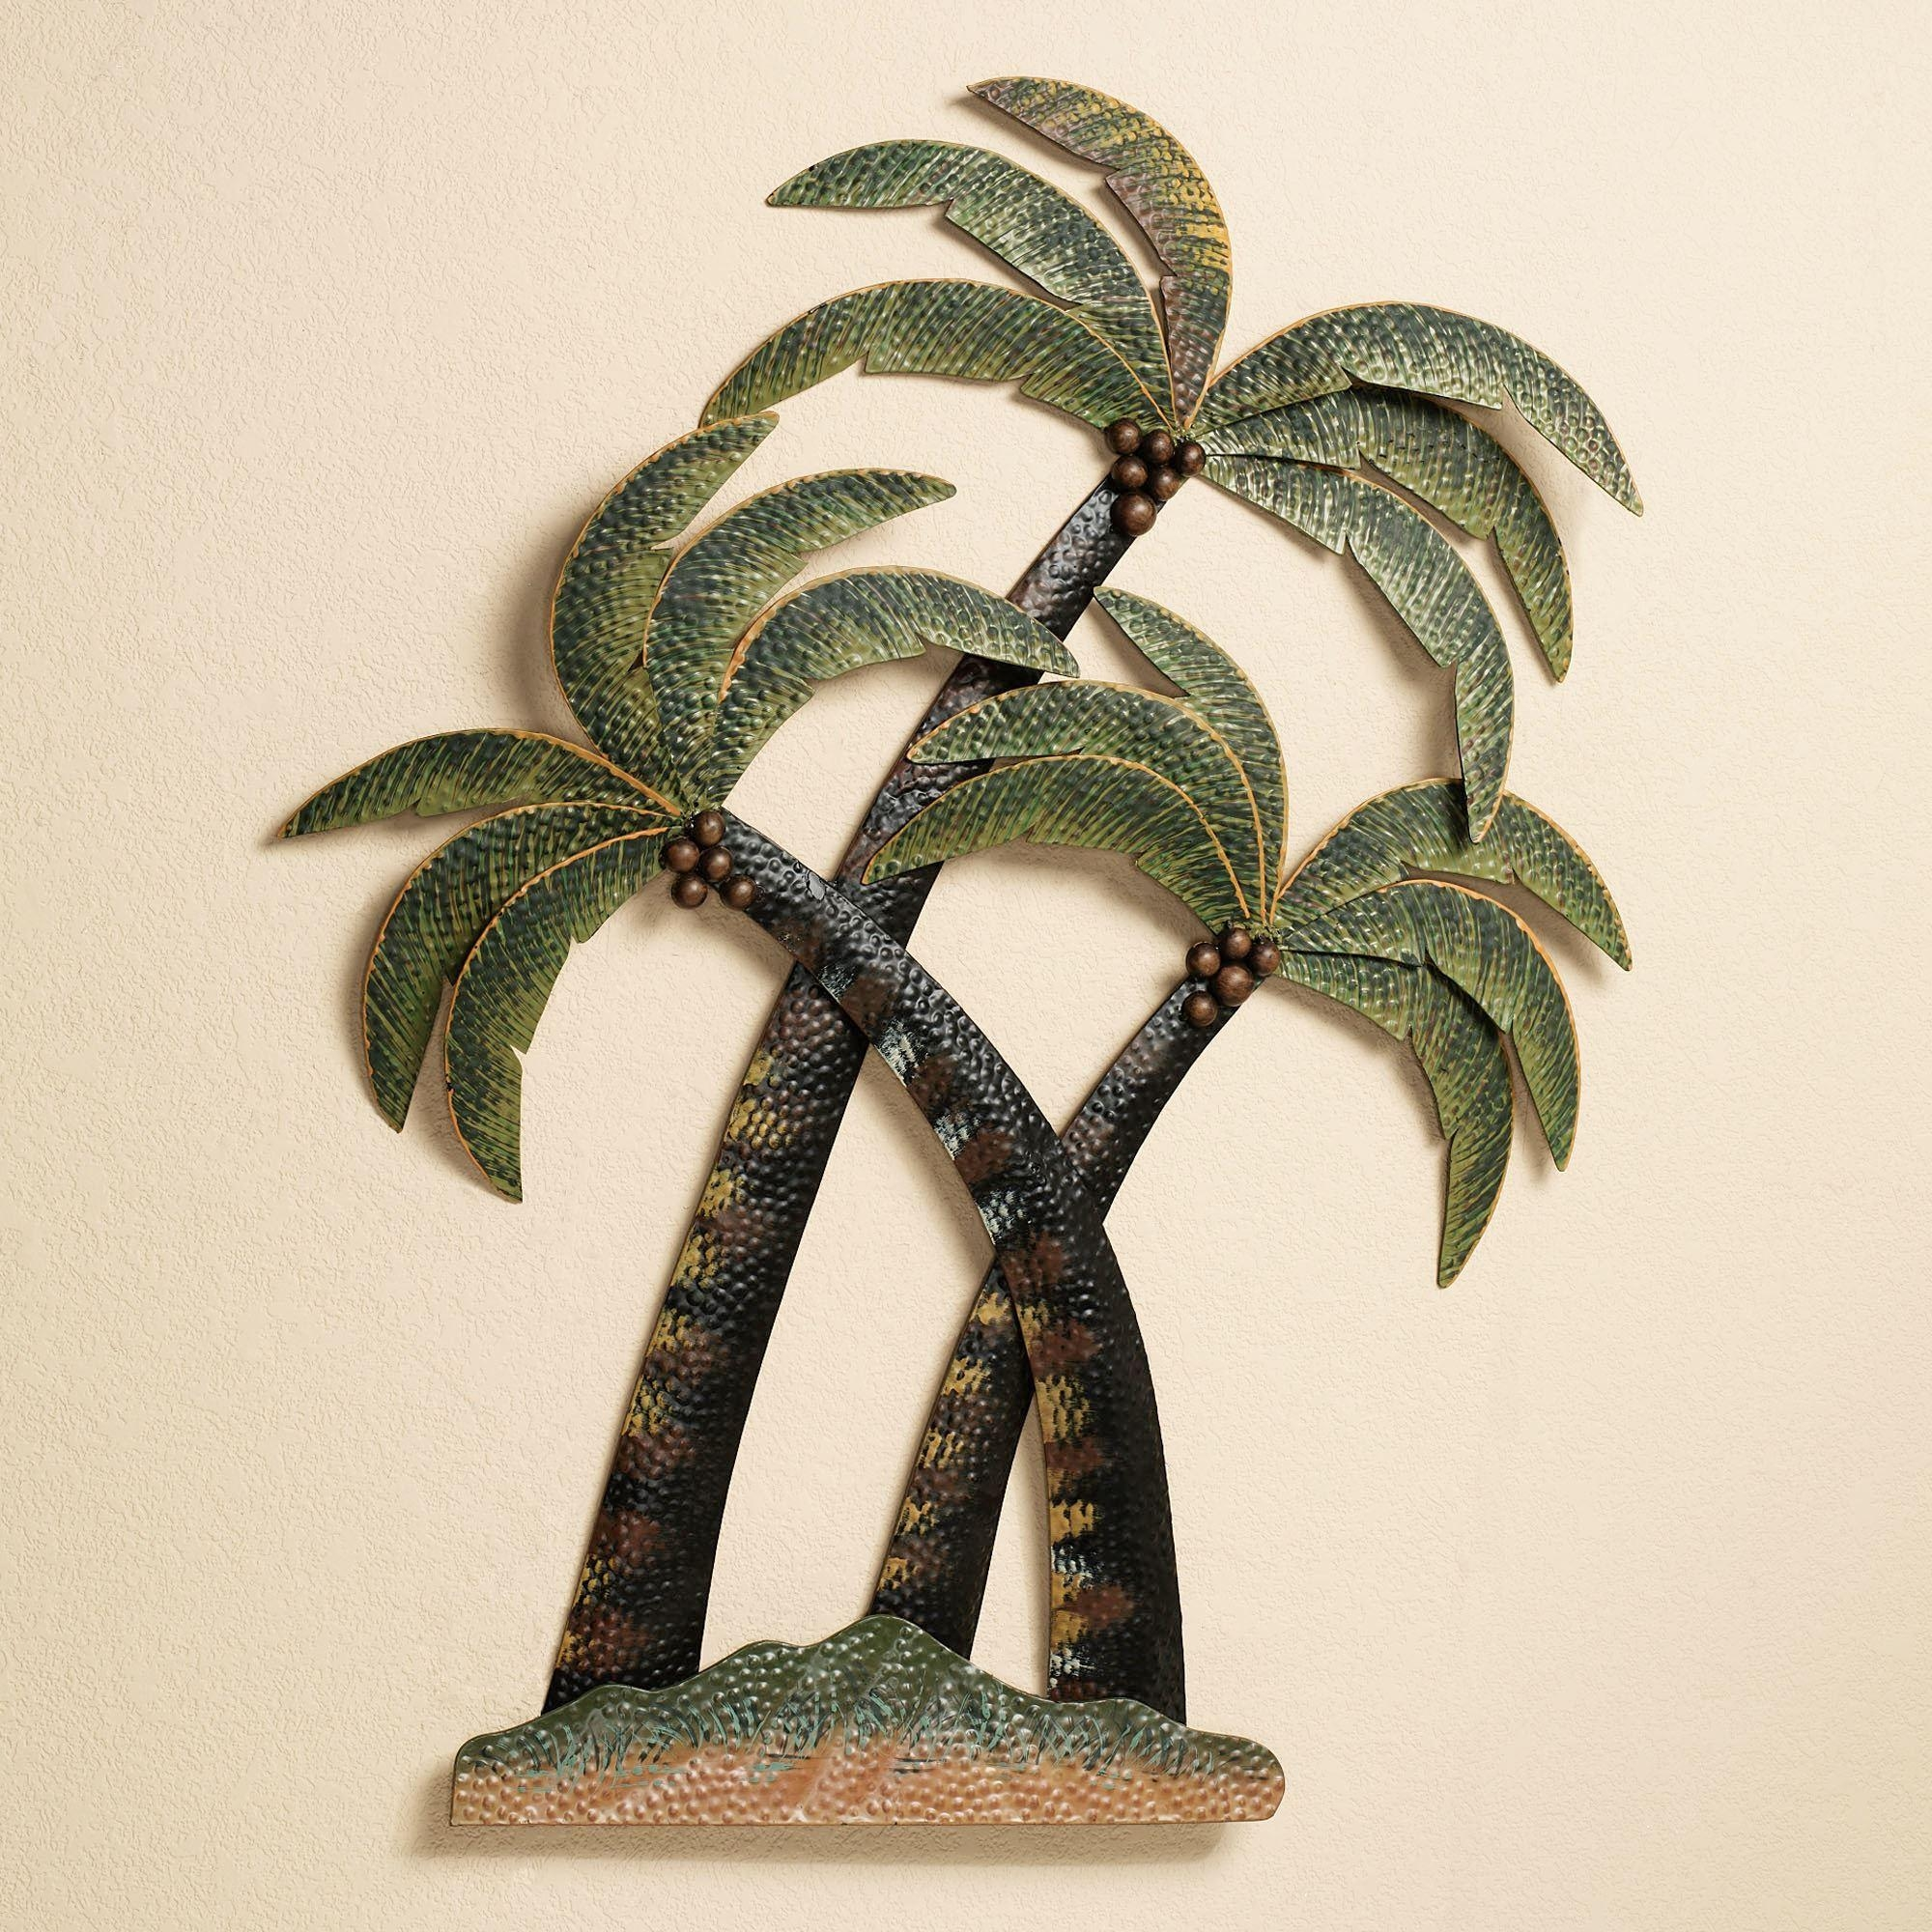 Coco Palm Tree Metal Wall Sculpture For Target Metal Wall Art (Image 2 of 20)